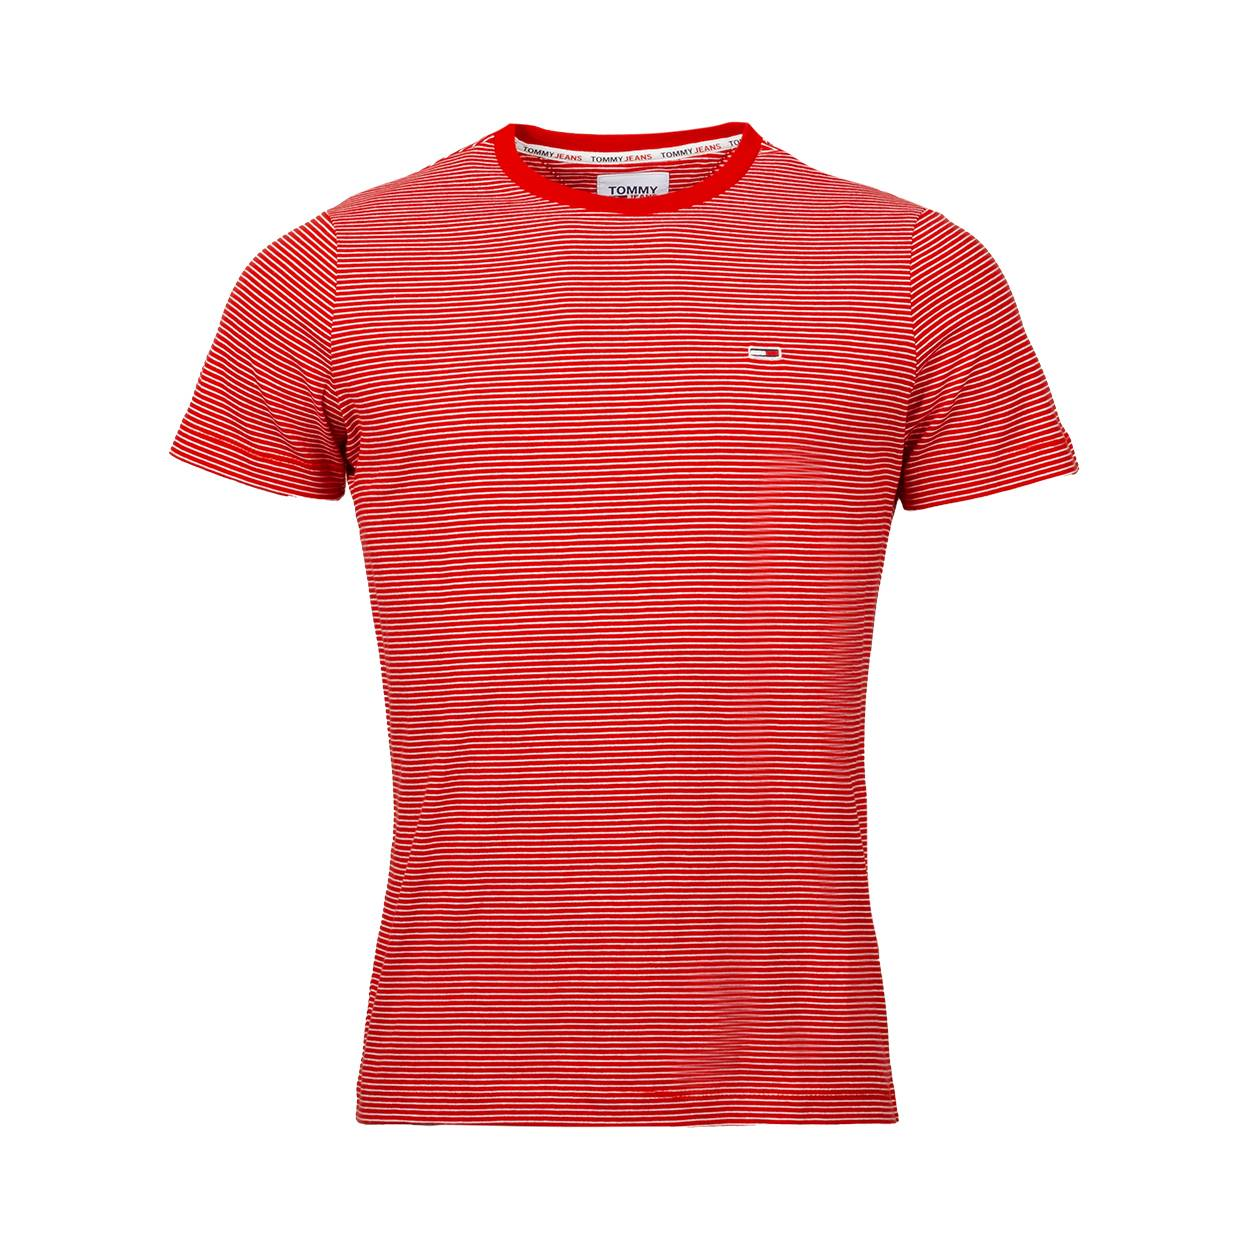 Tommy Jeans Tee-shirt col rond Tommy Jeans Essential en coton bio rouge à rayures blanches - ROUGE BLANC -